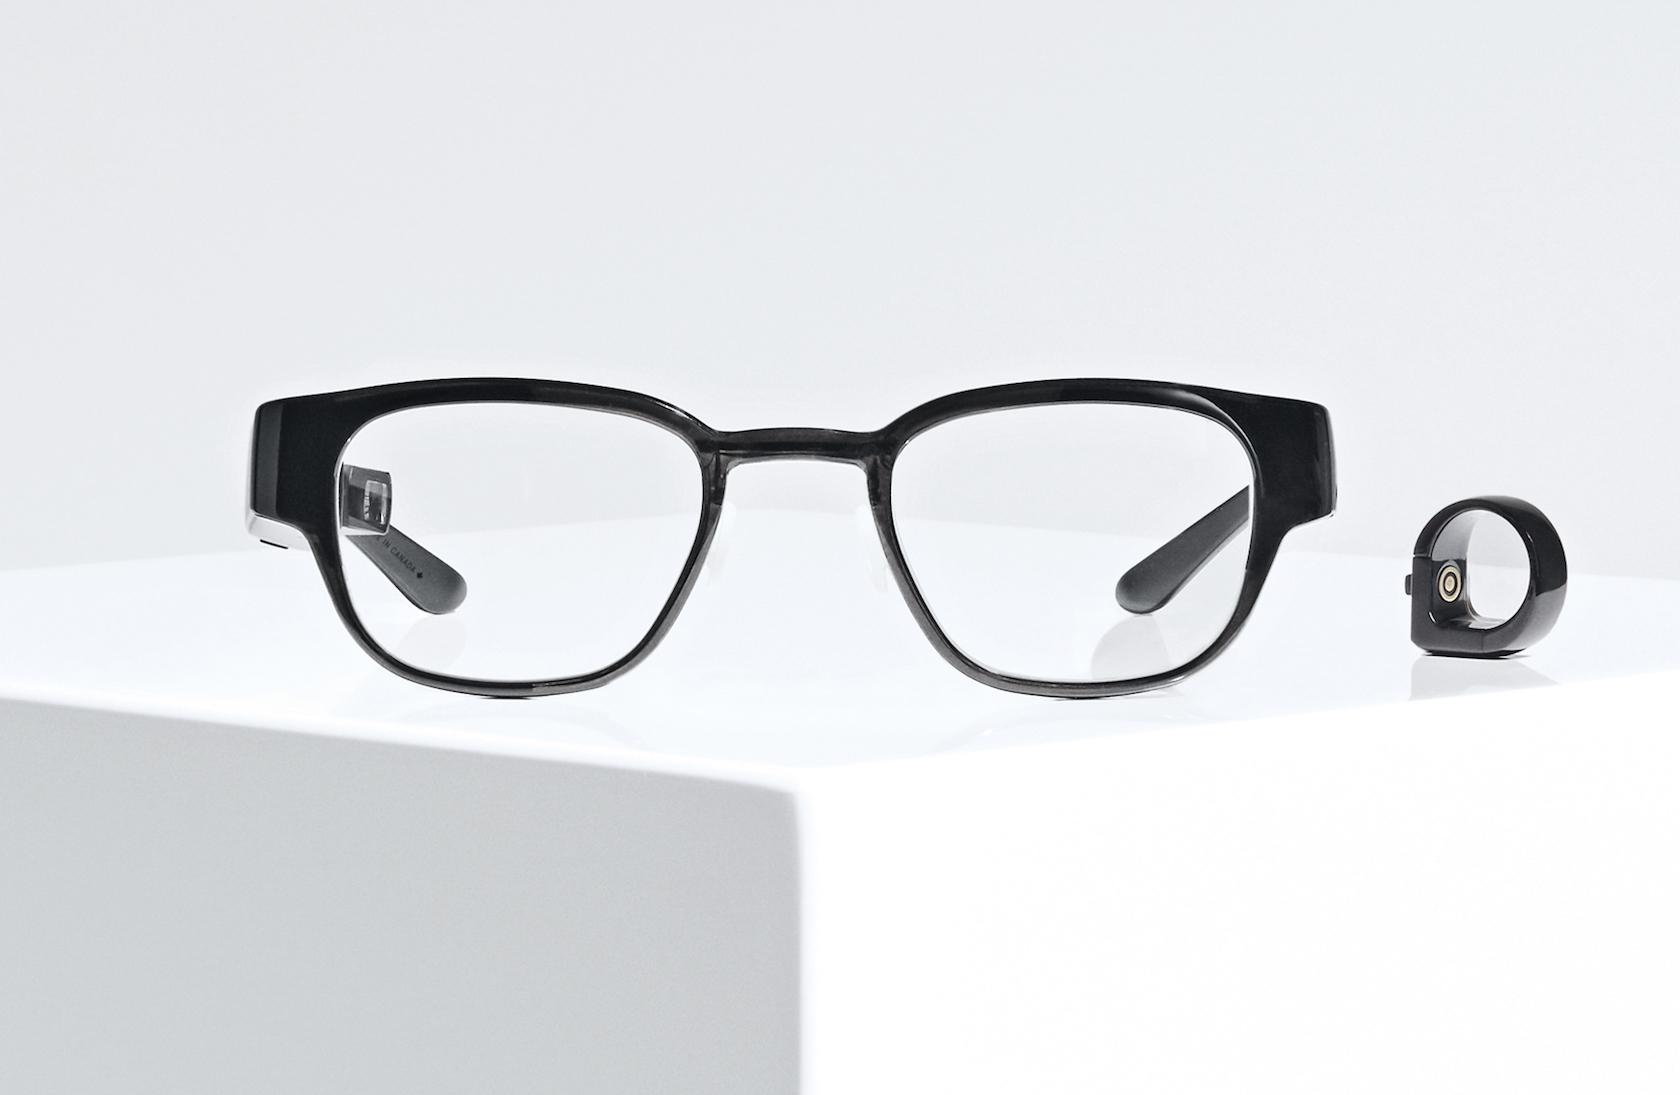 Retro Oversize Clear Lens Round Spectacles Eyewear Glasses